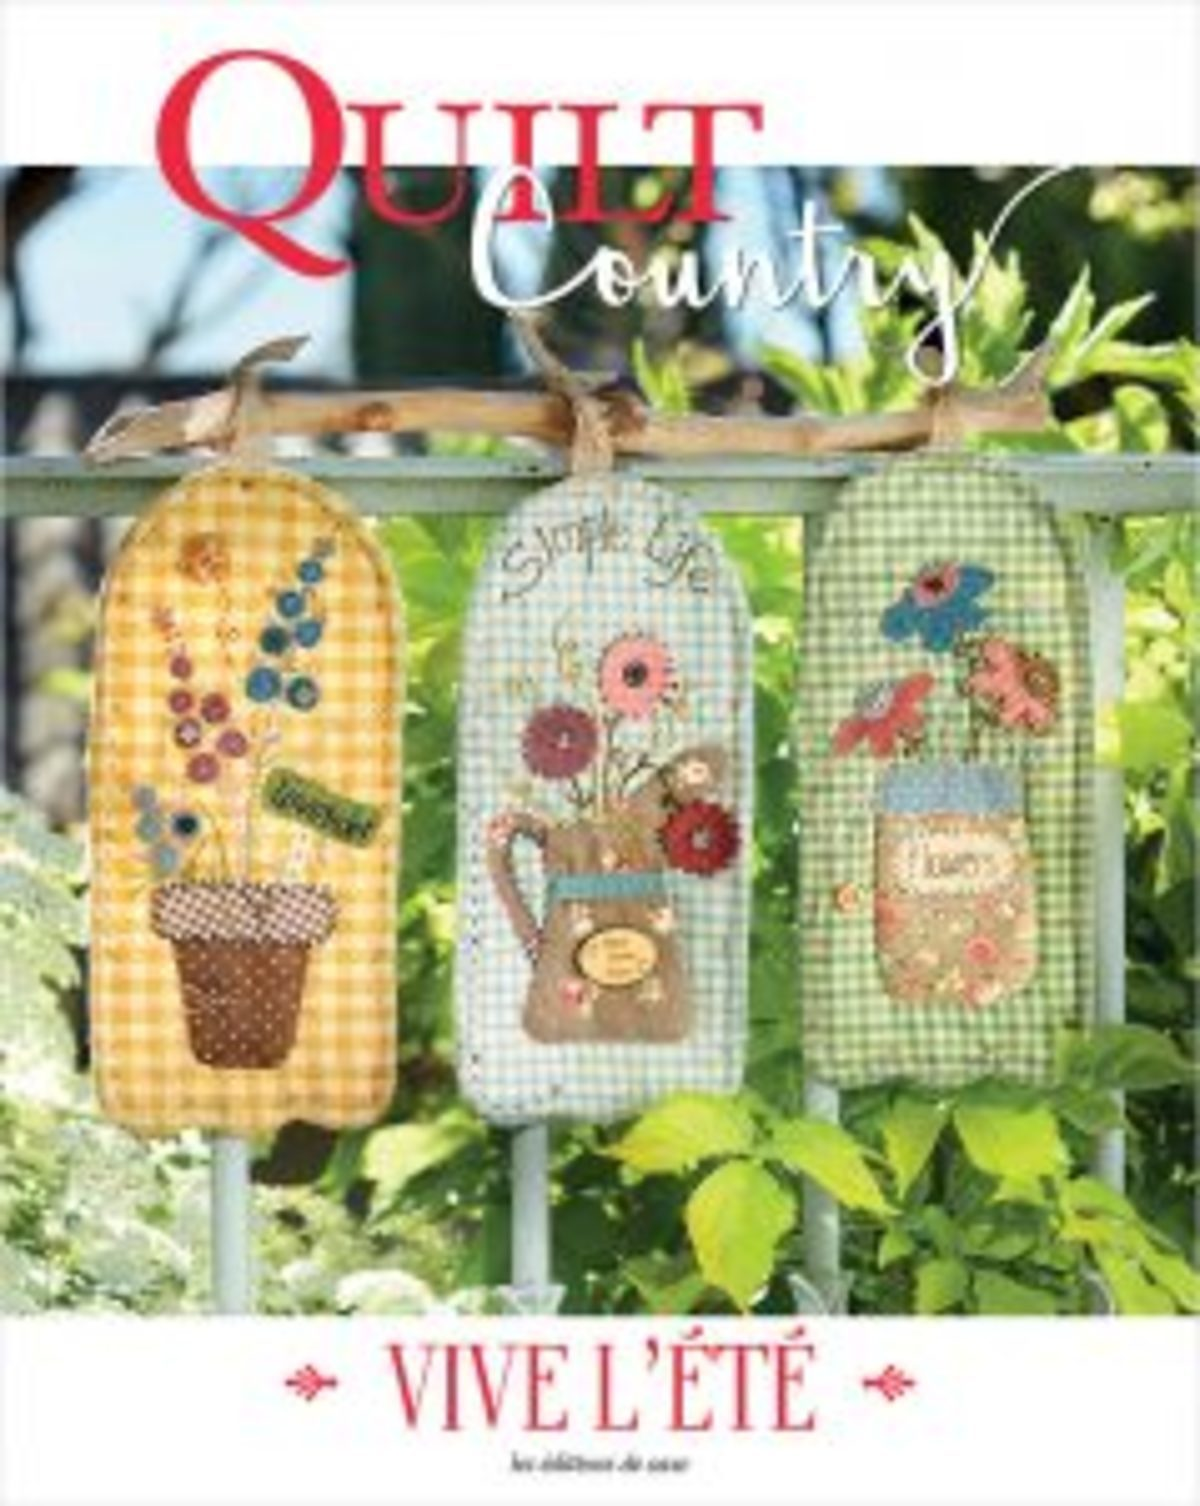 Quilt-country-57-2267057